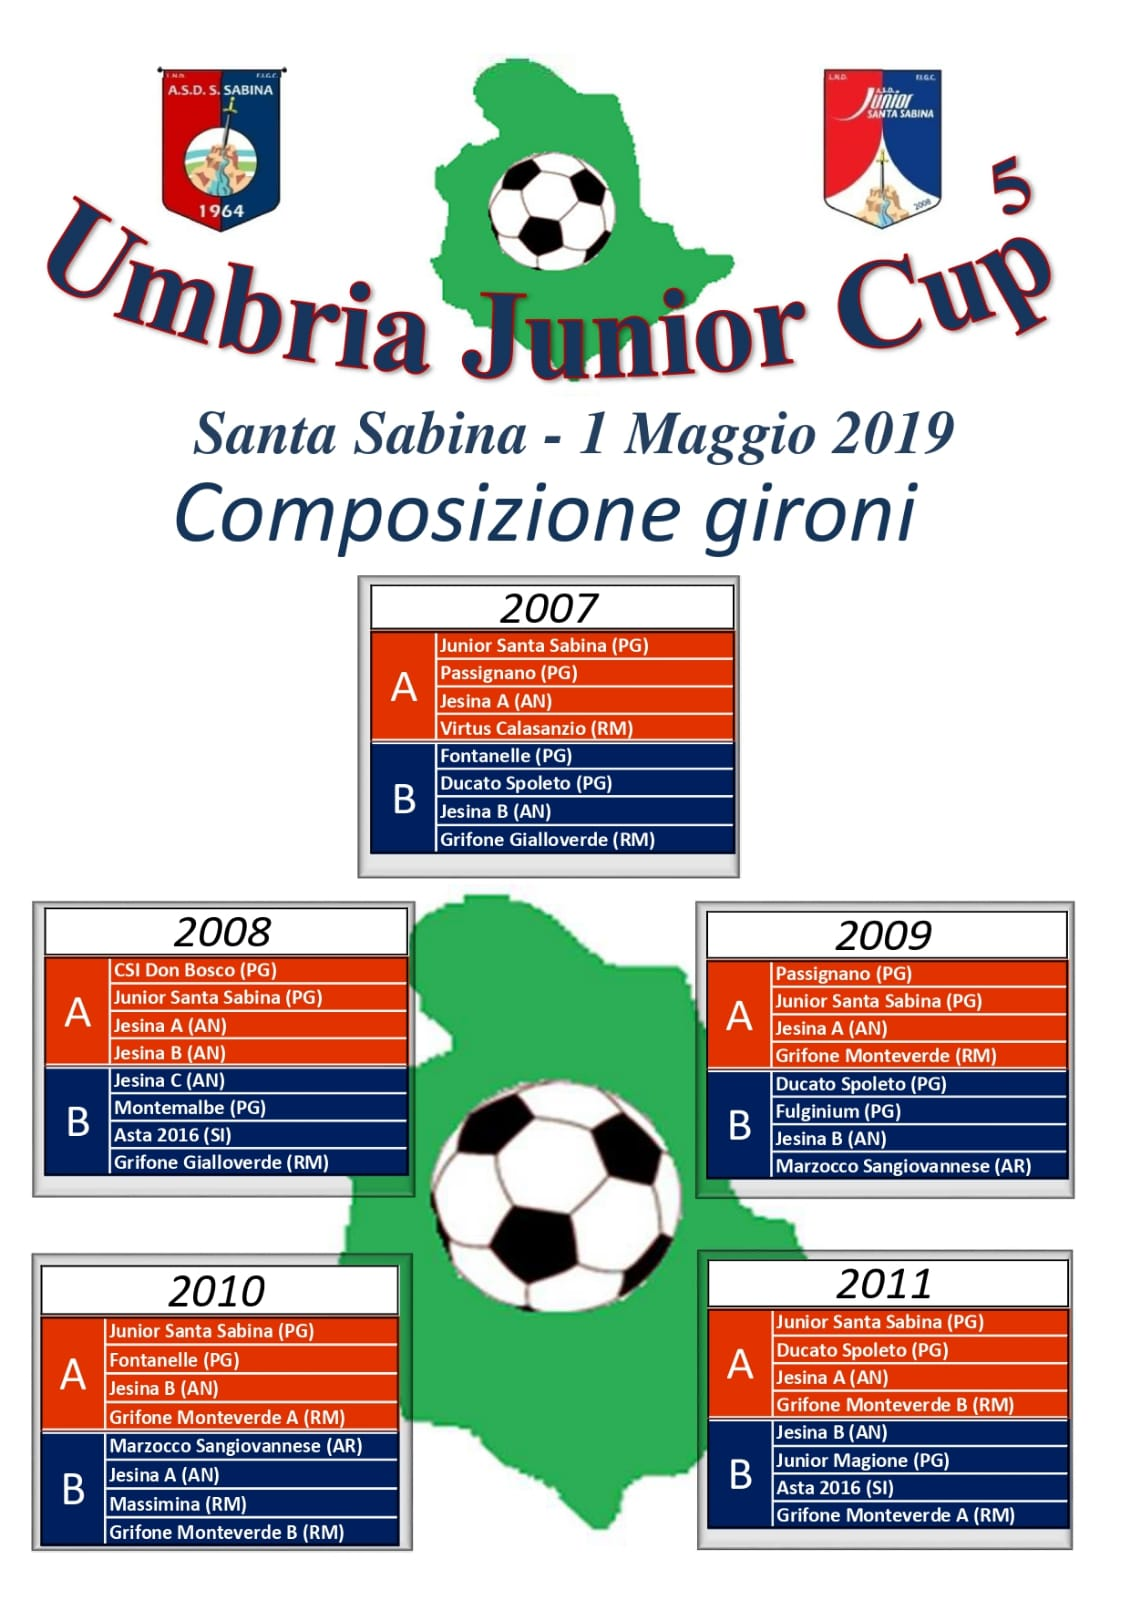 Umbria Junior Cup 5